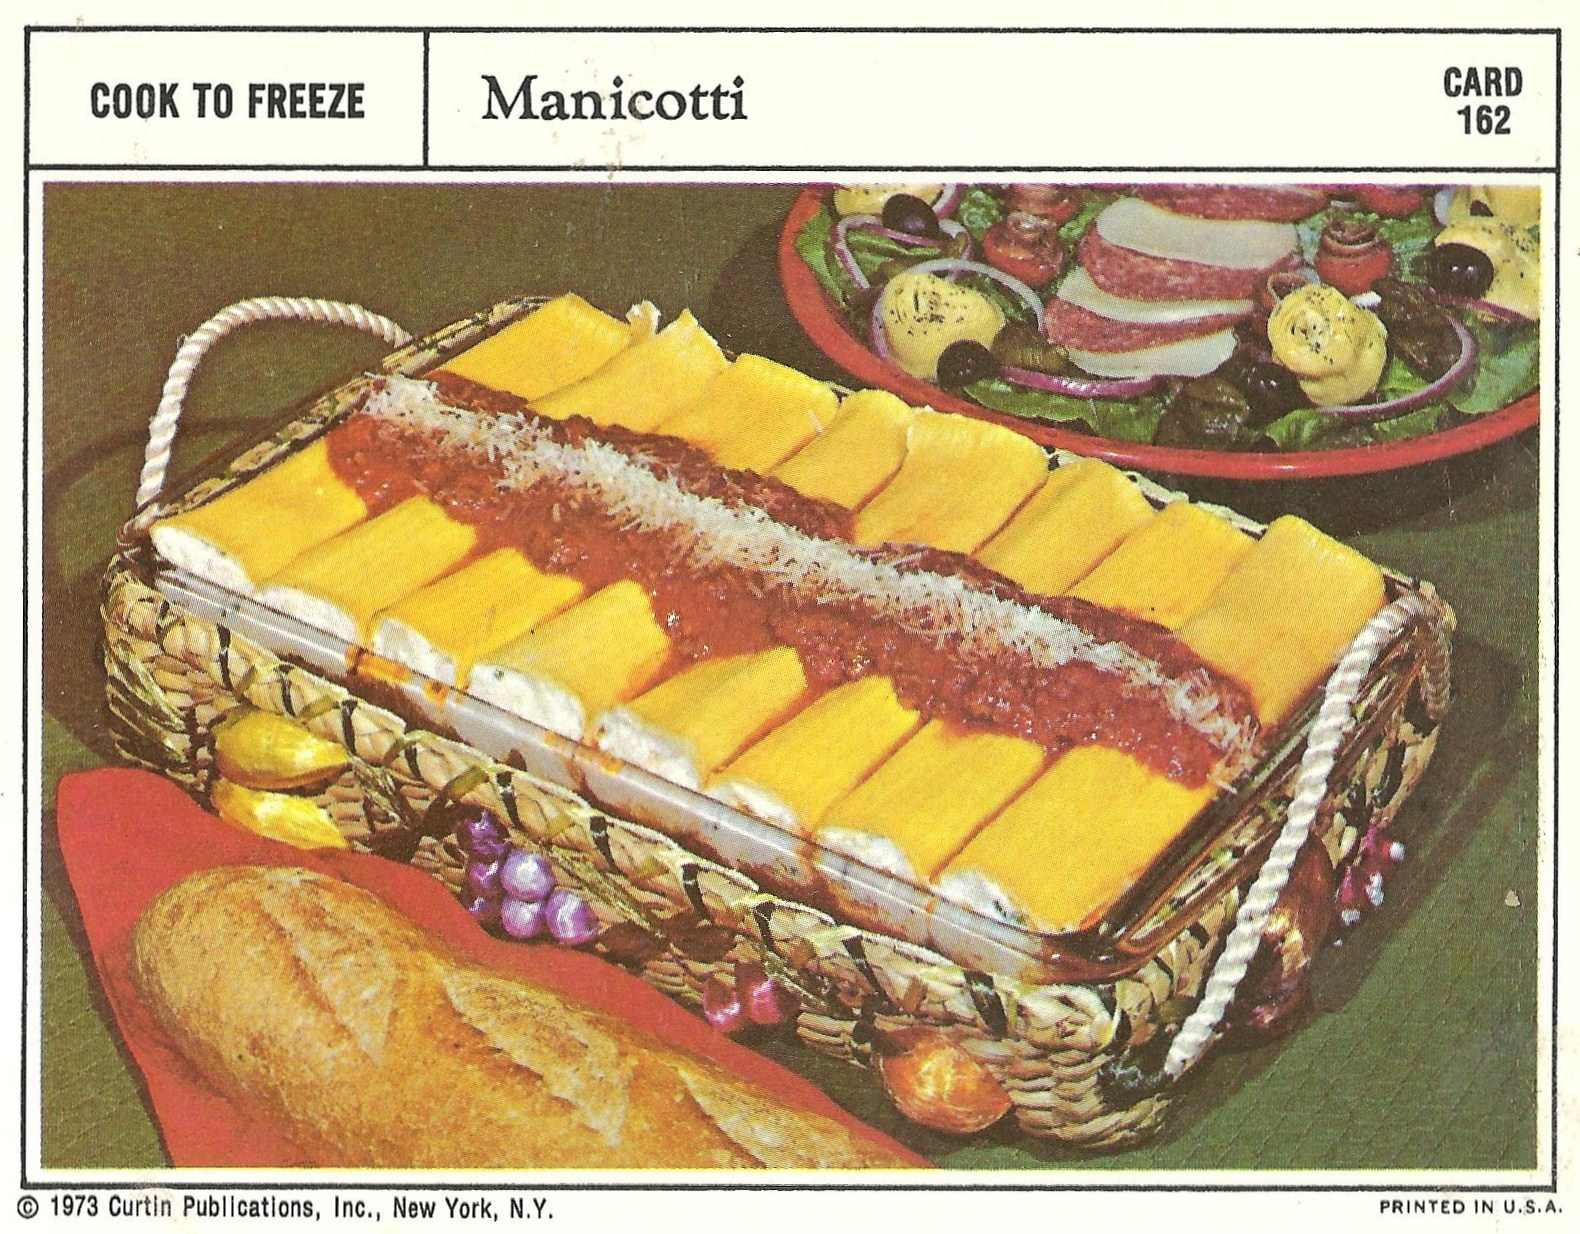 Bad and ugly of retro food 1970s finest recipe cards 17 such perfect manicotti stuffed correctly sauced evenly sprinkle of cheese whats this i see ripped noodles and sauce leaking into the spaces forumfinder Image collections